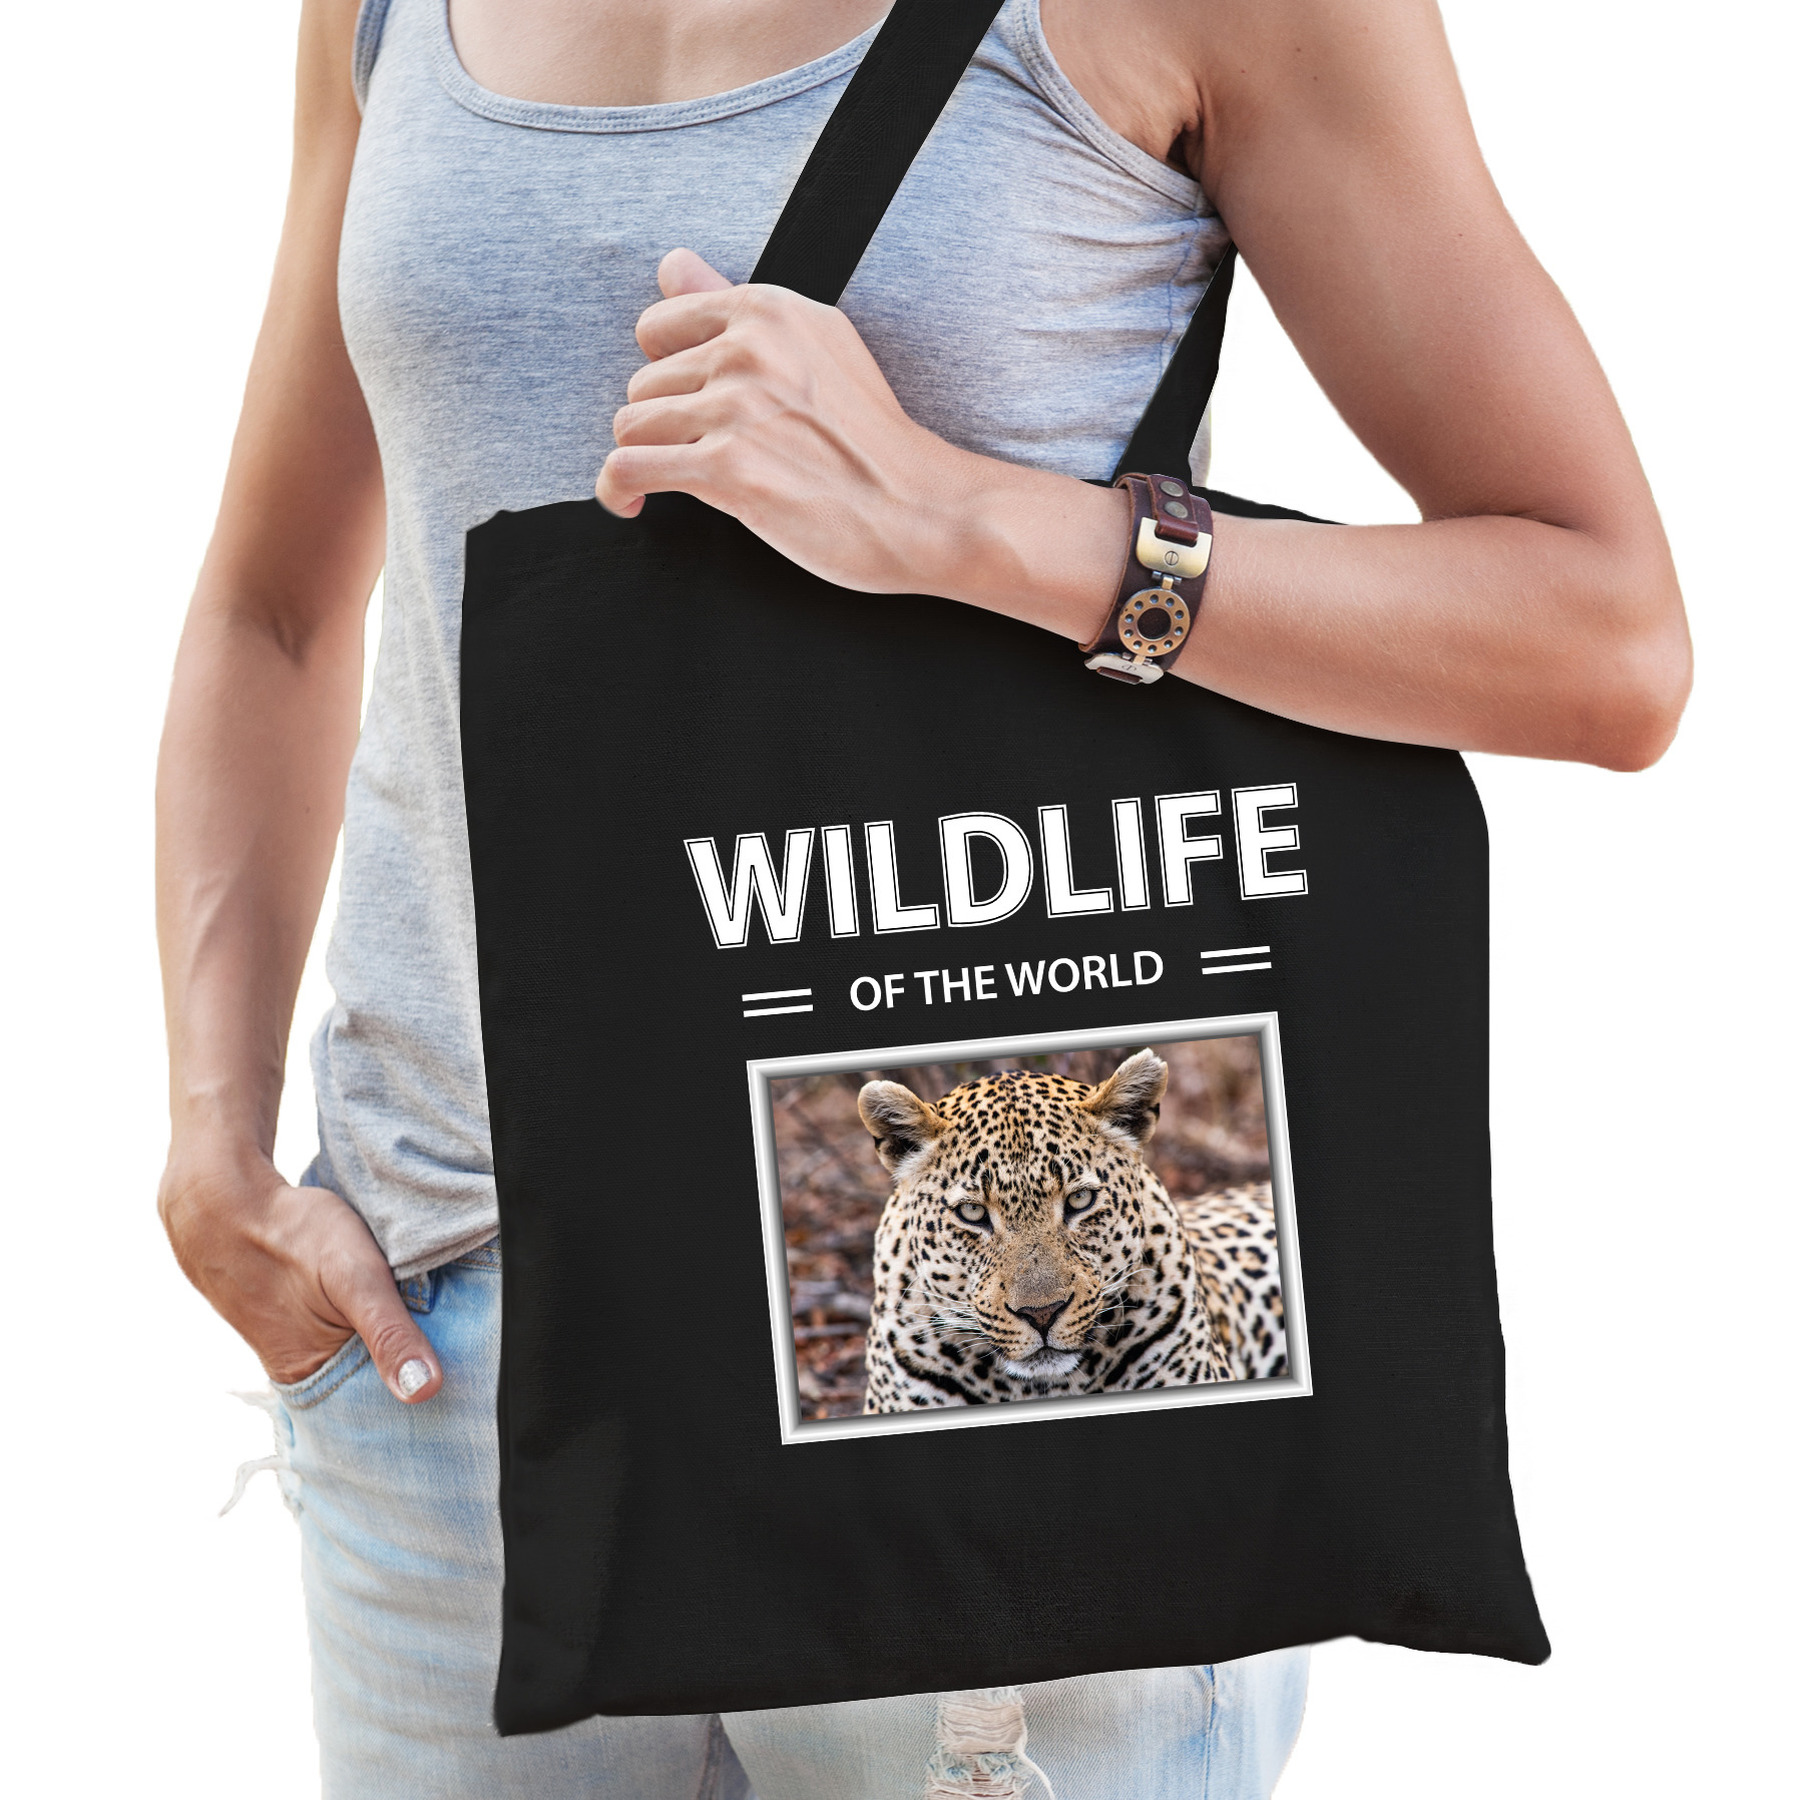 Katoenen tasje Jaguars zwart - wildlife of the world Jaguar cadeau tas